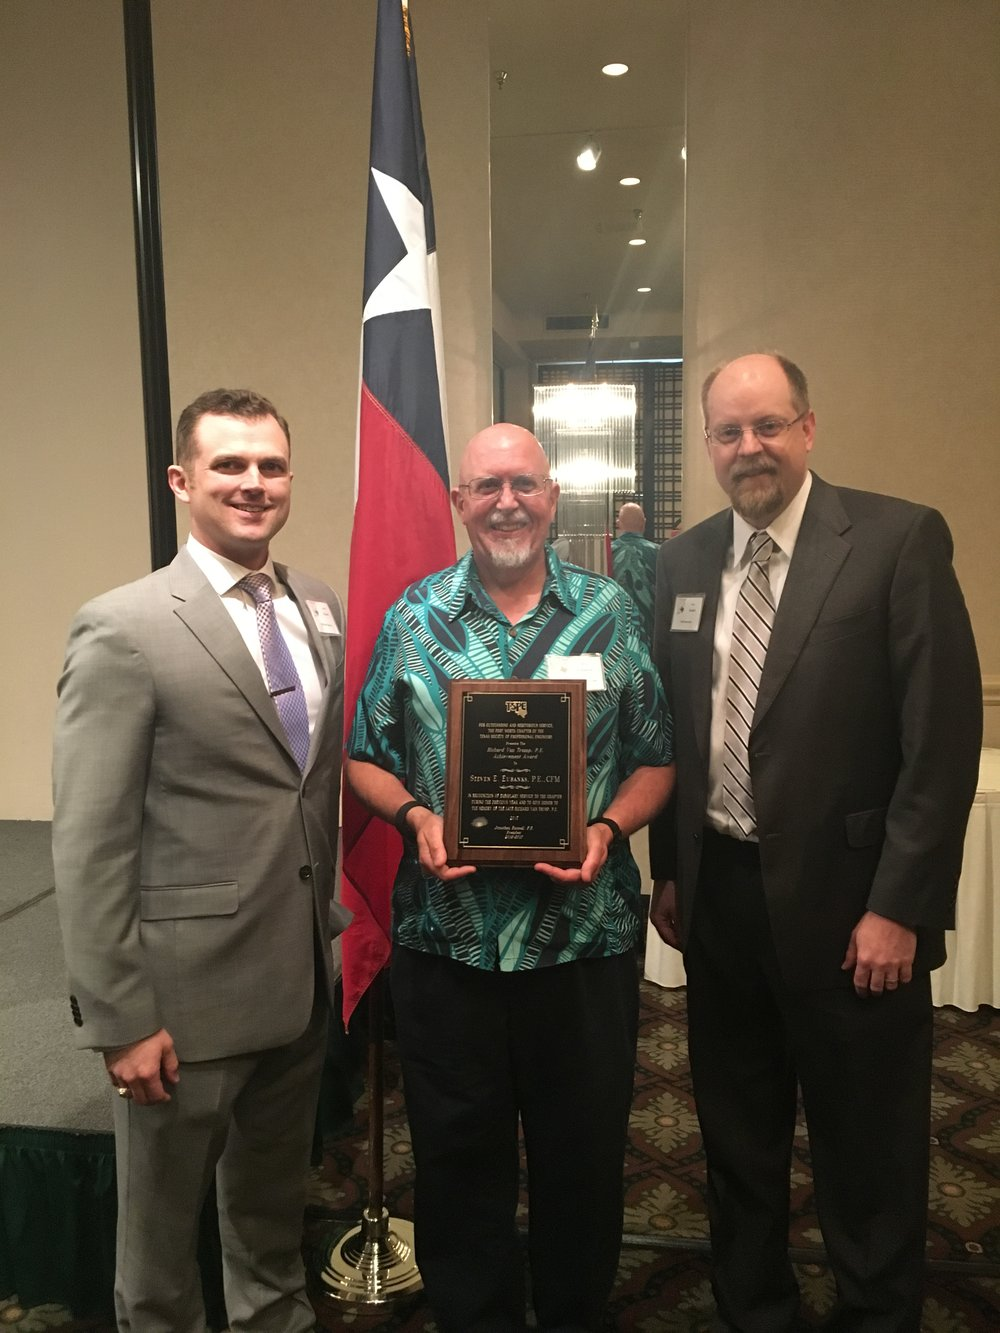 TSPE Richard Van Trump Award, Steven E. Eubanks, P.E., CFM, City of Fort Worth